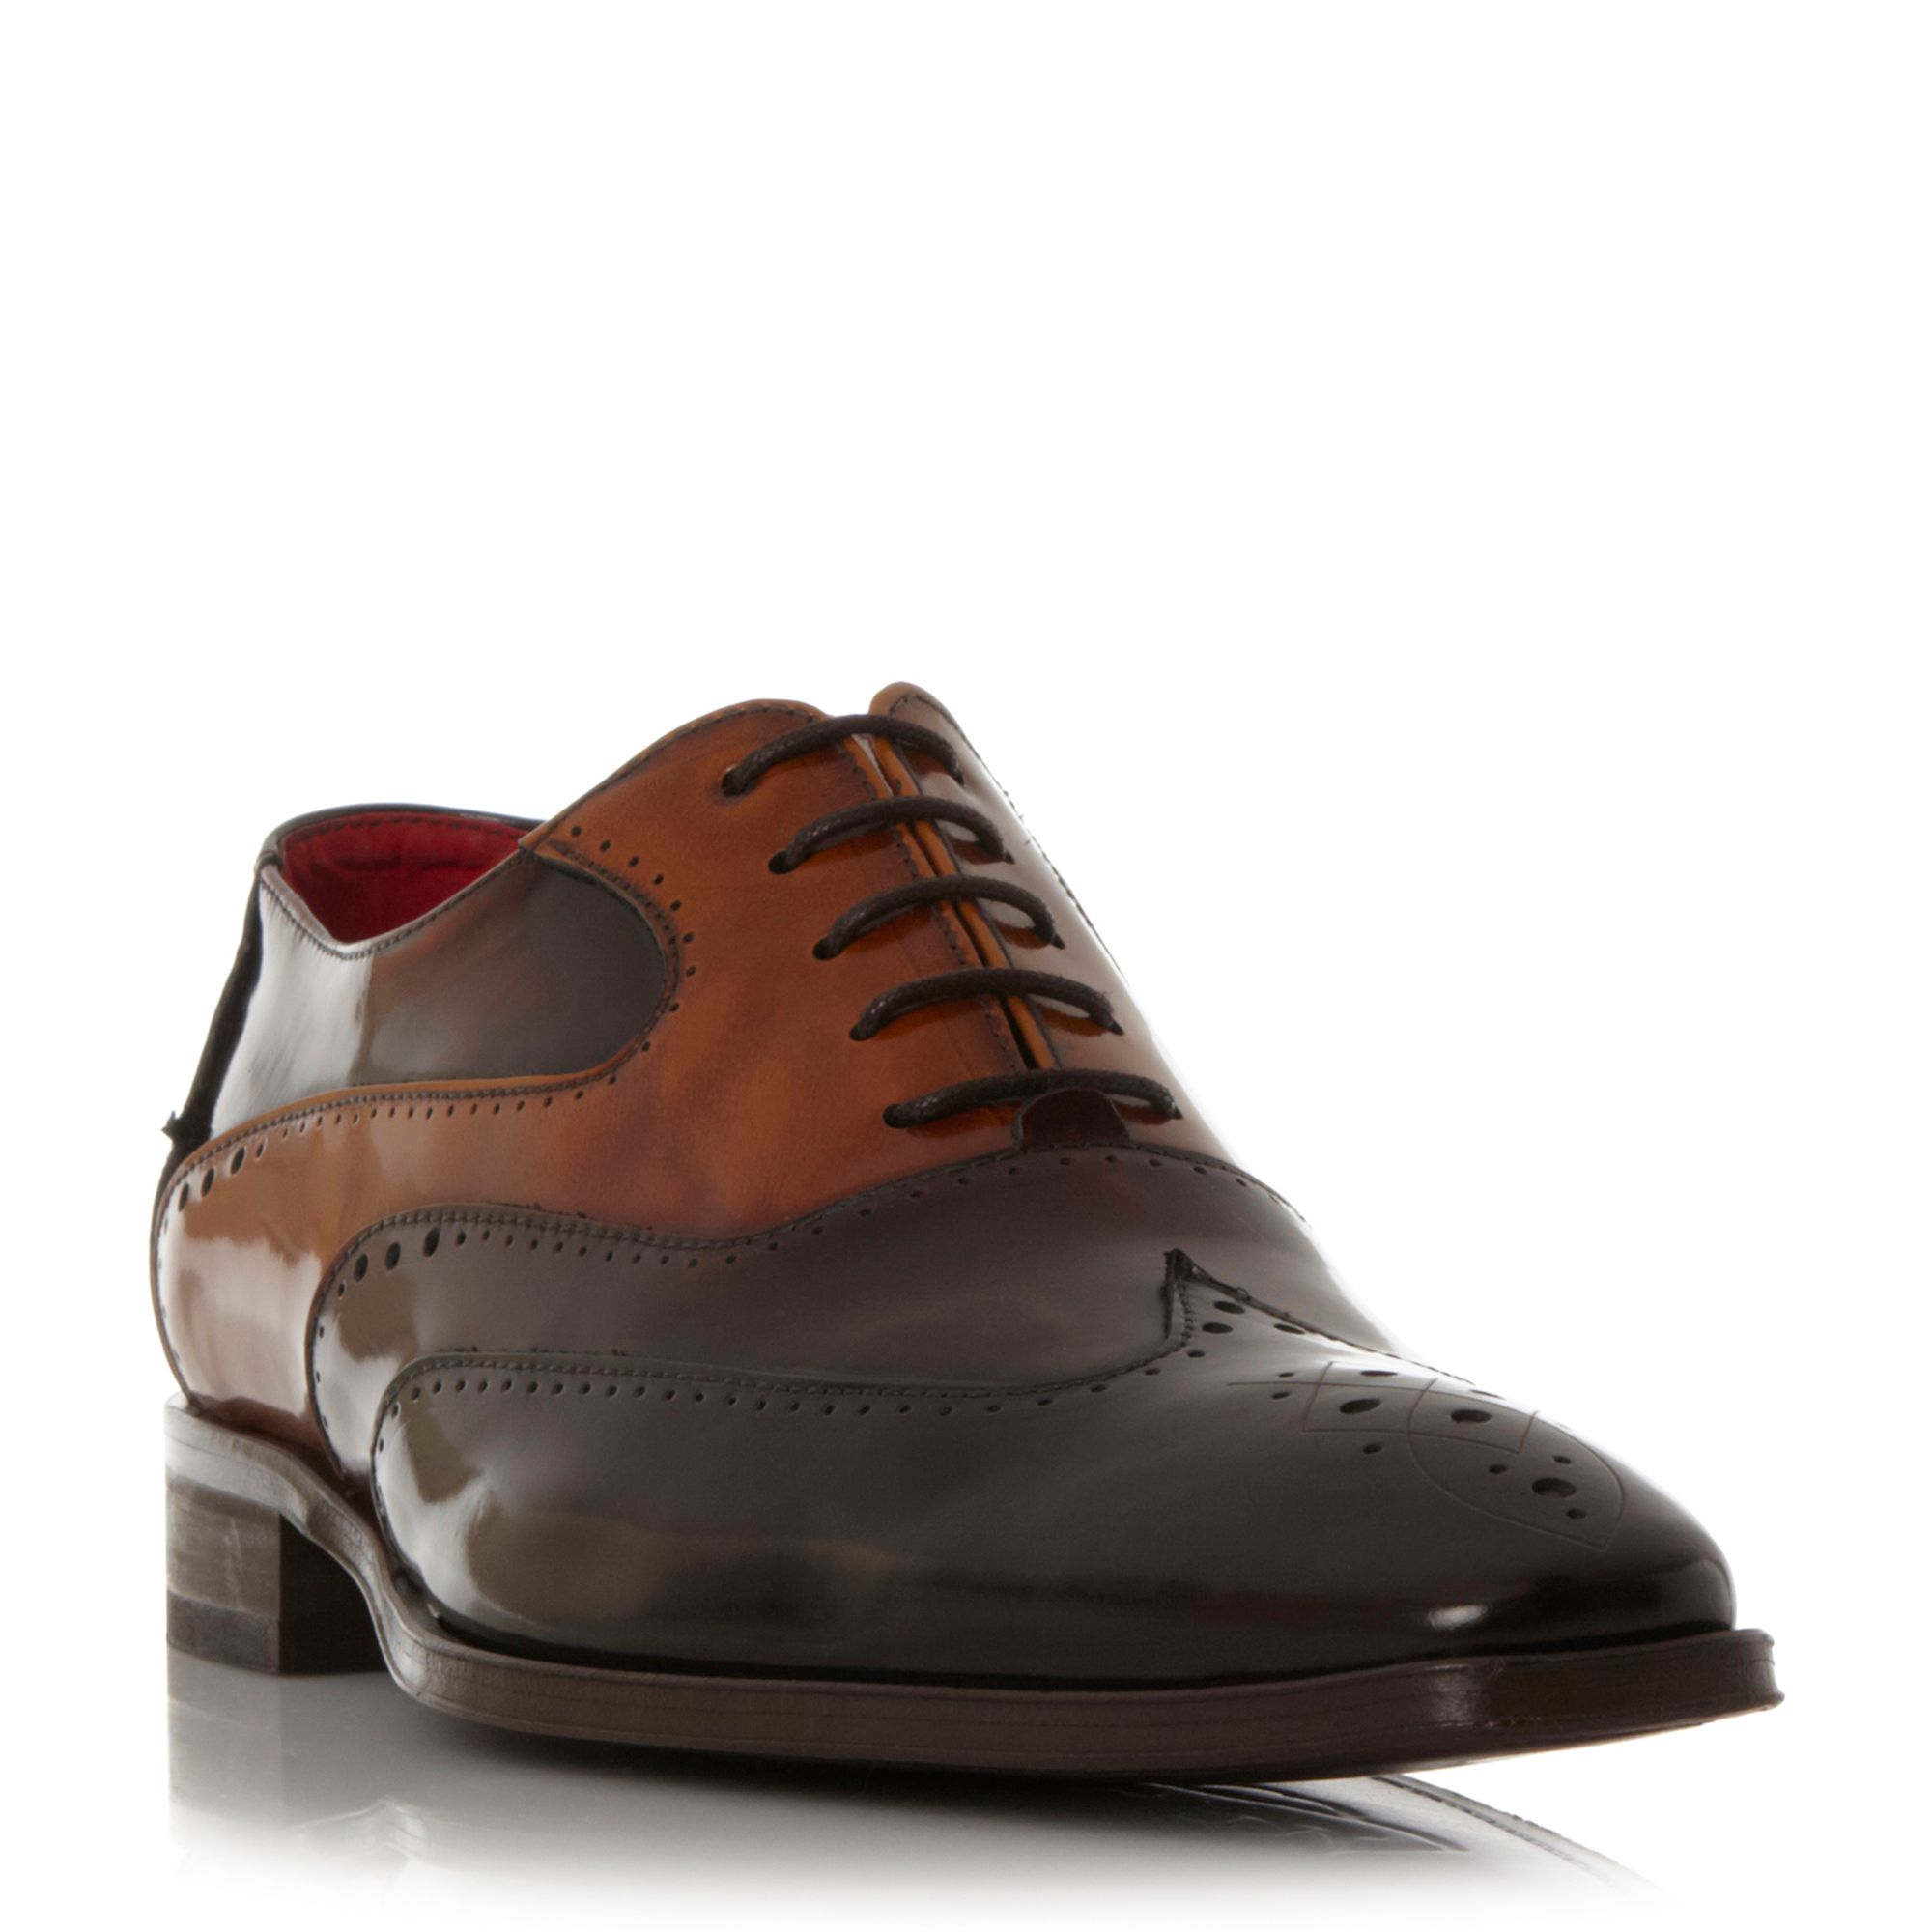 Jeffery West J720 Lace Up Oxford Shoes ...